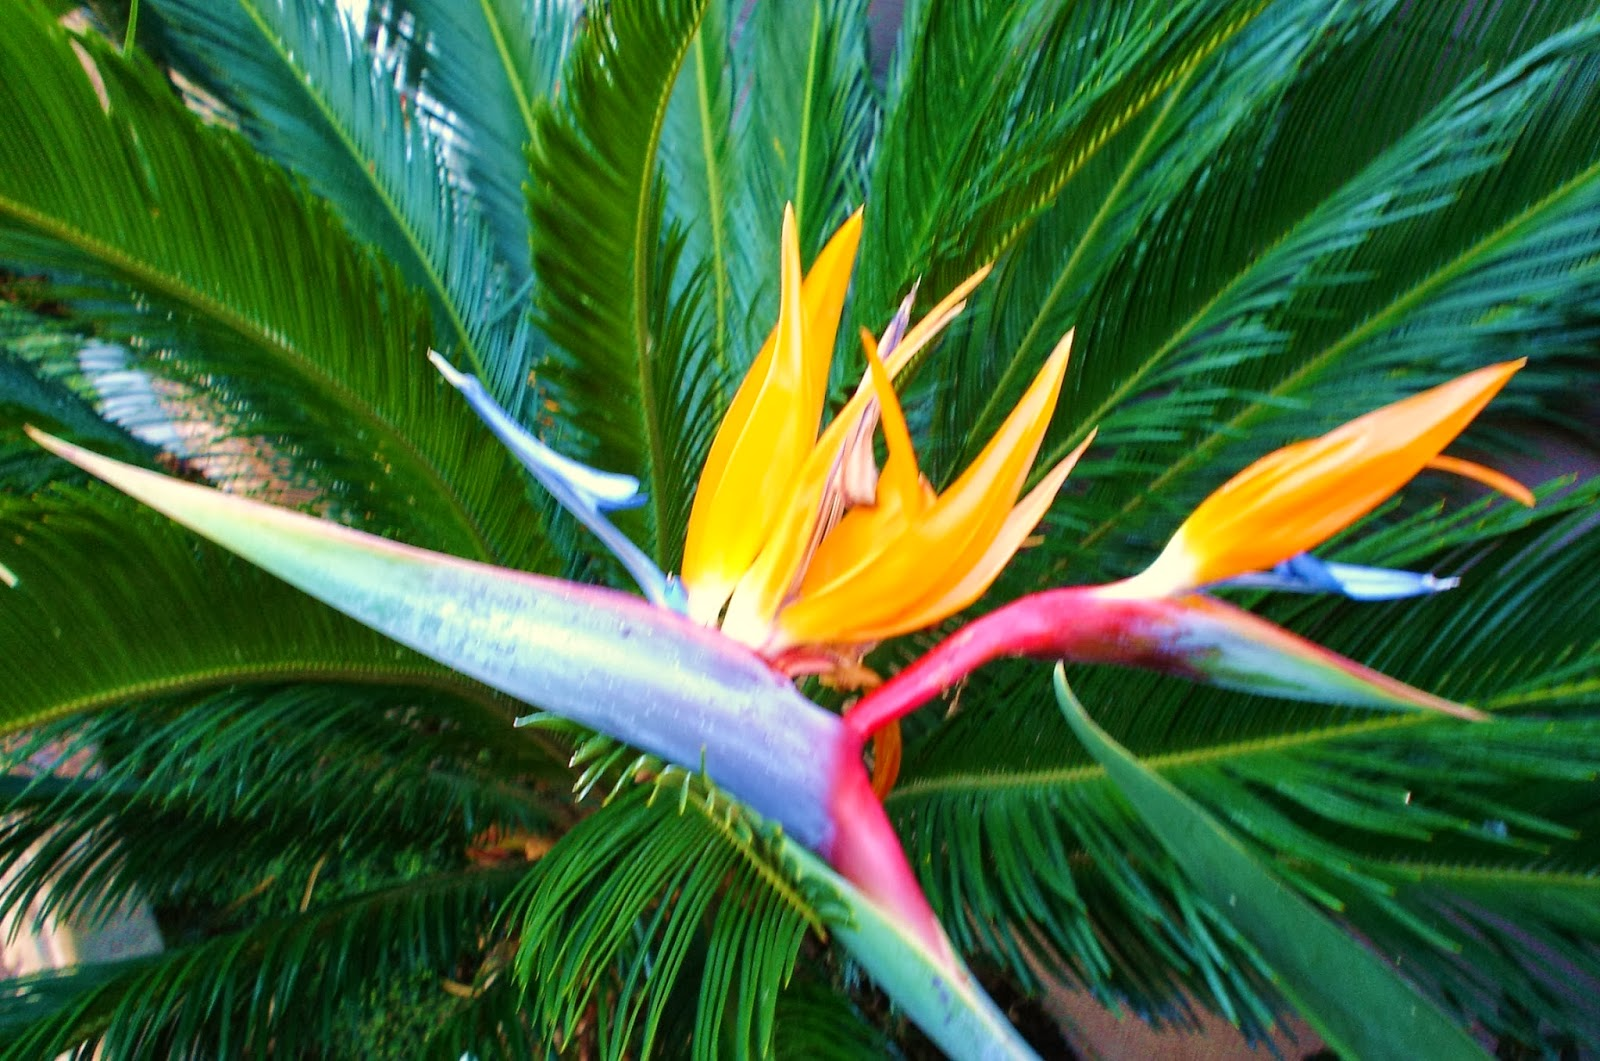 Bird of paradise wallpapers hd - Hd images of birds of paradise ...